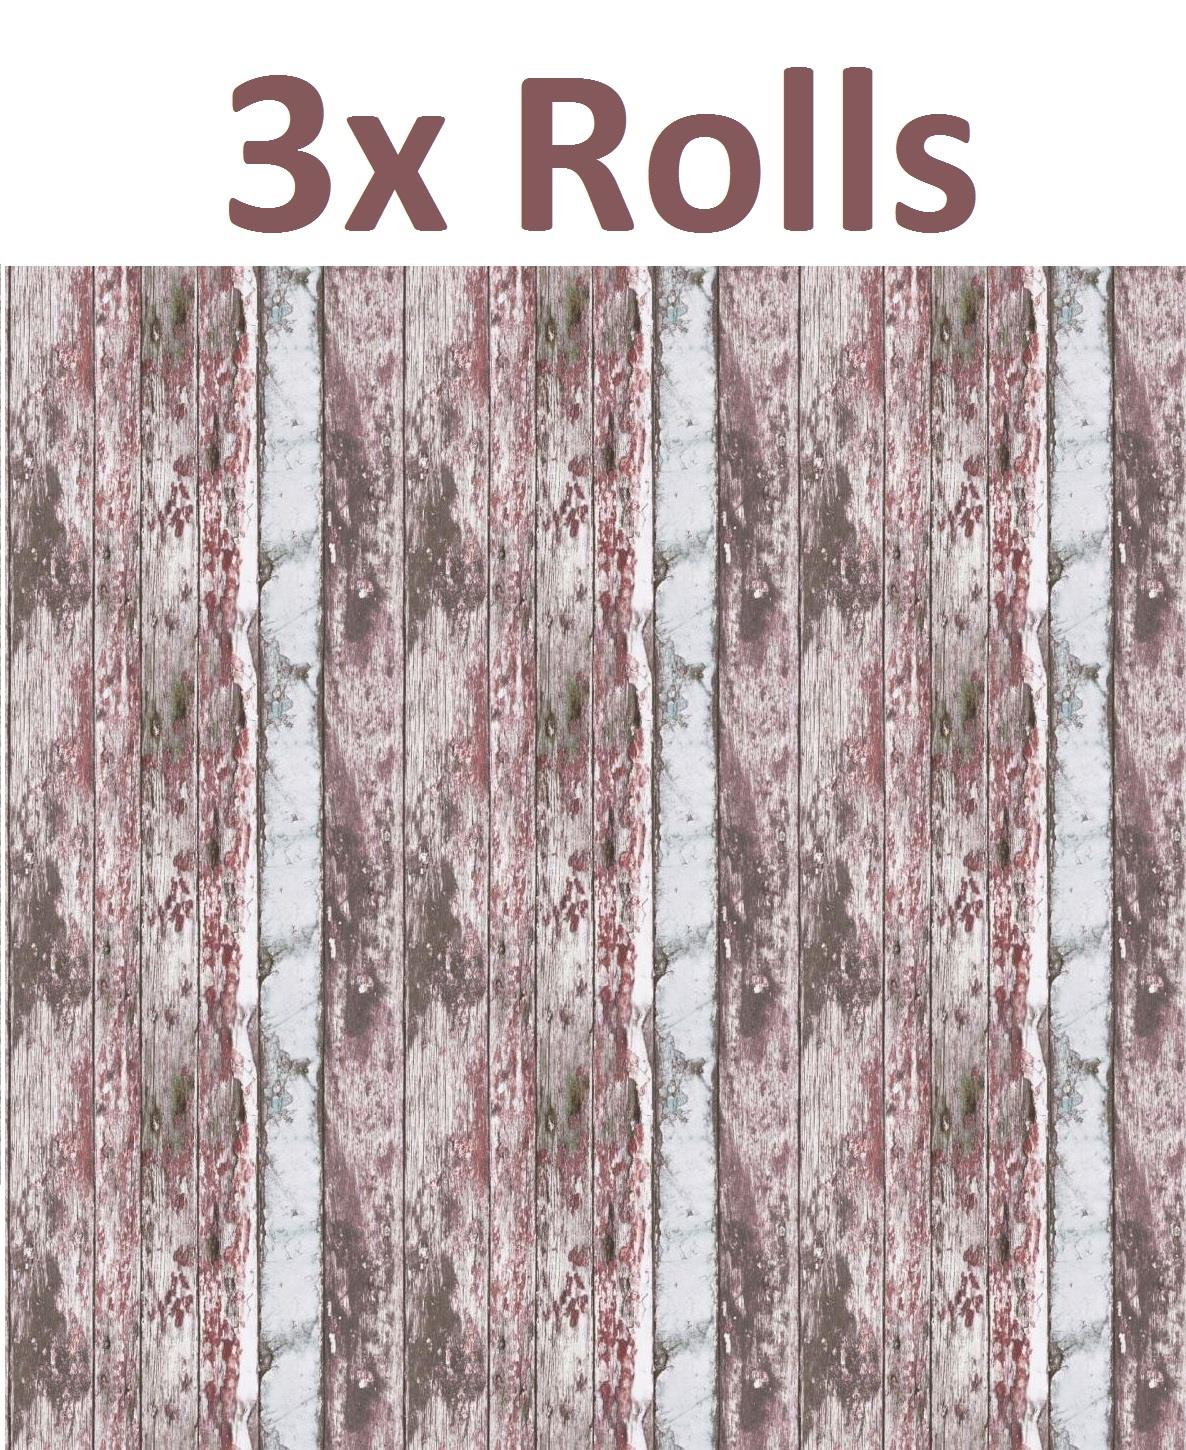 Painted-Rustic-Wood-Wallpaper-Distressed-Red-White-Textured-Vinyl-3-x-Rolls